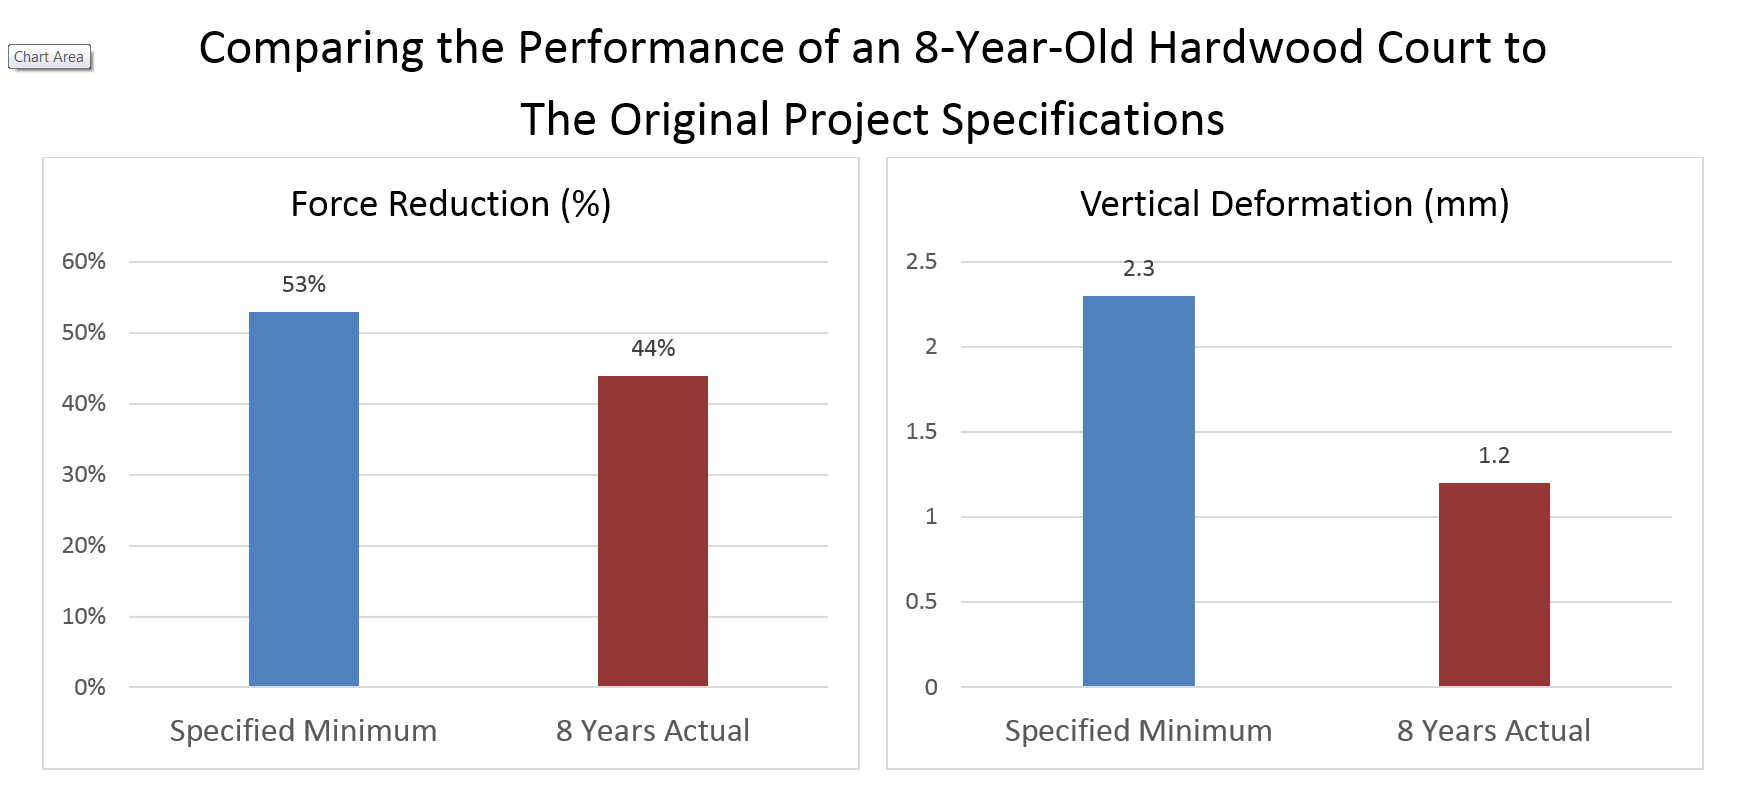 comparing the performance of an 8-year-old hardwood court to the original project specifications